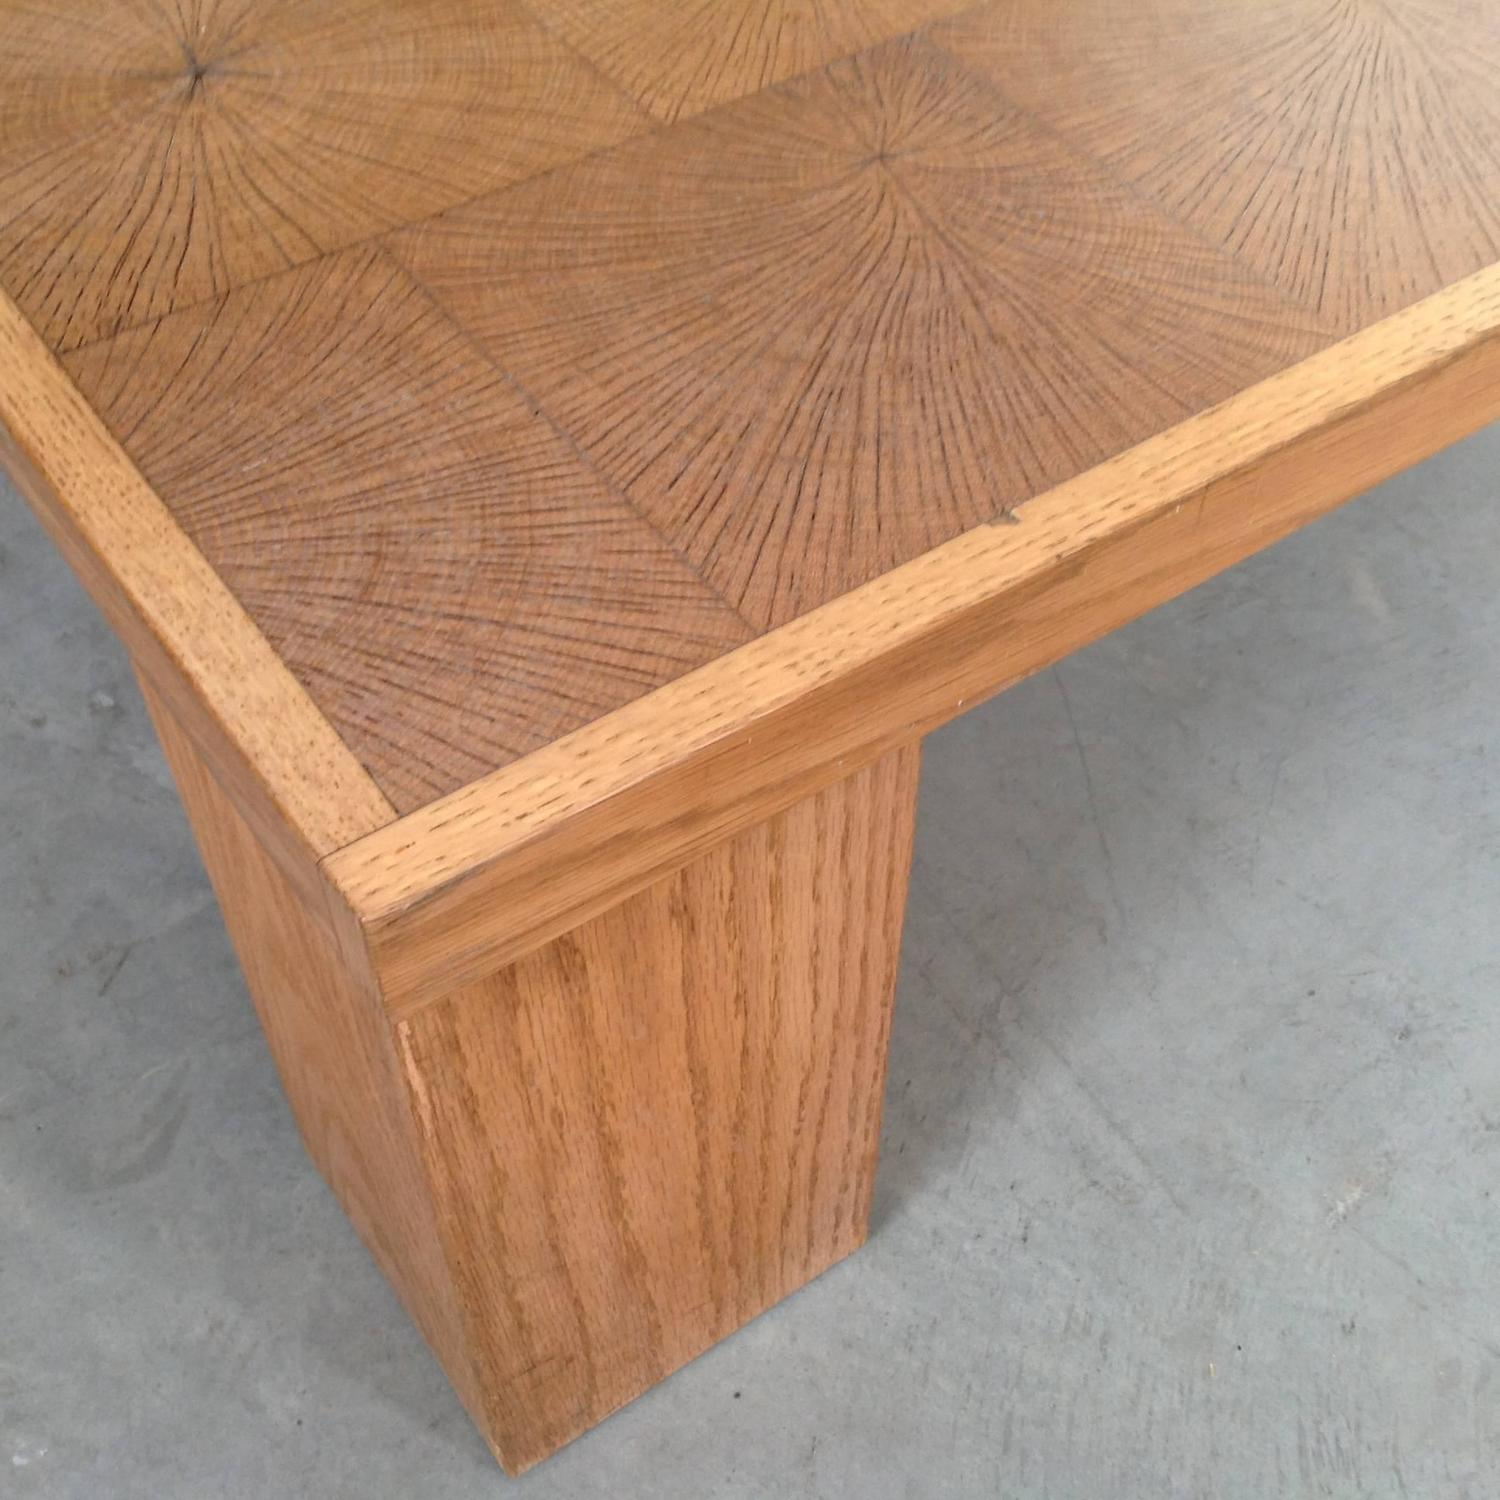 Solid Wood Block Coffee Table: Elegant Coffee Table In Solid Oak Block Wood By Emiel